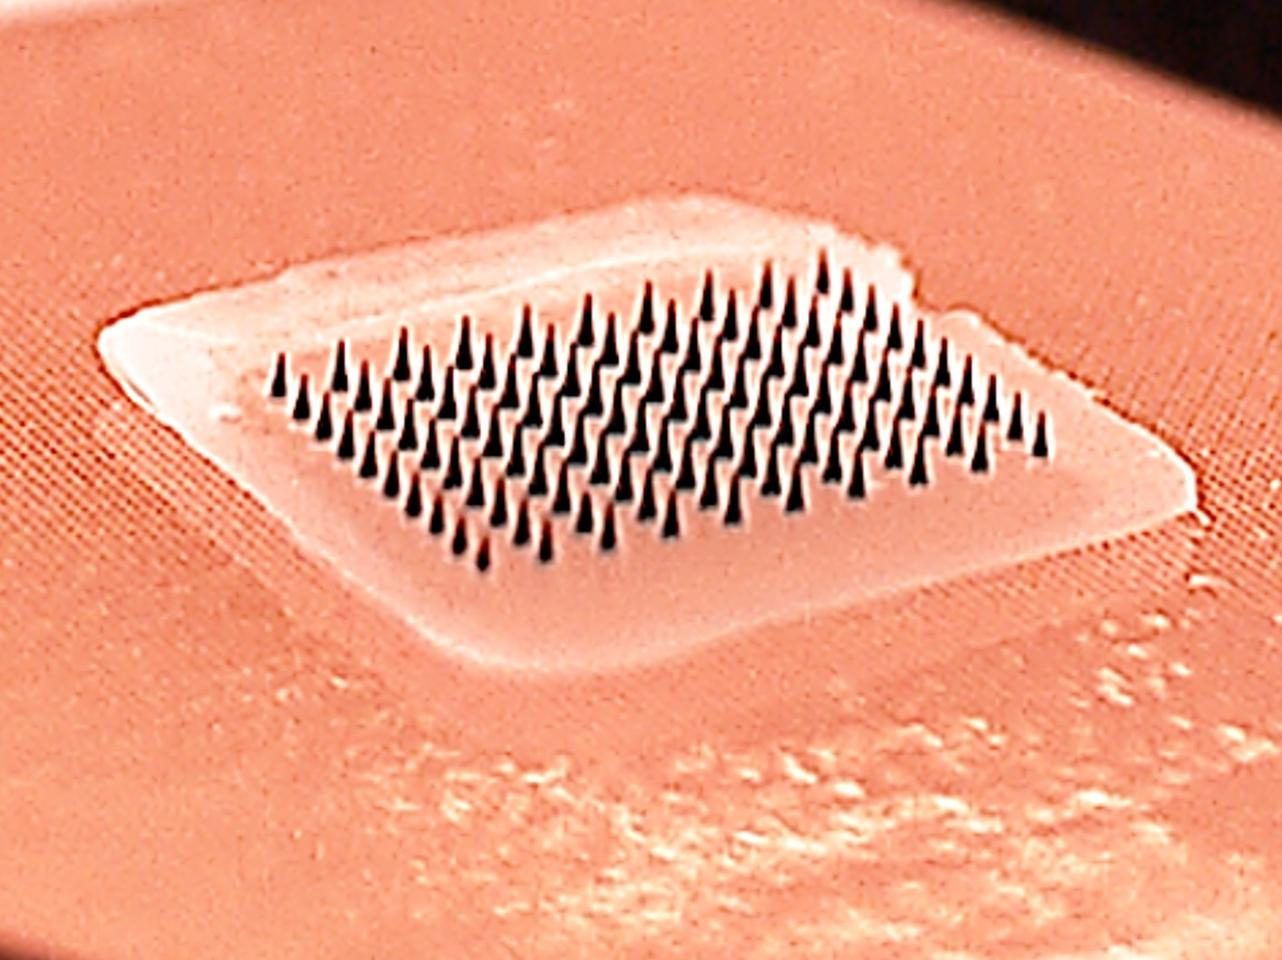 The microneedle patch contains an array of tiny plastic needles that dissolve in the skin, releasing the drug contained inside